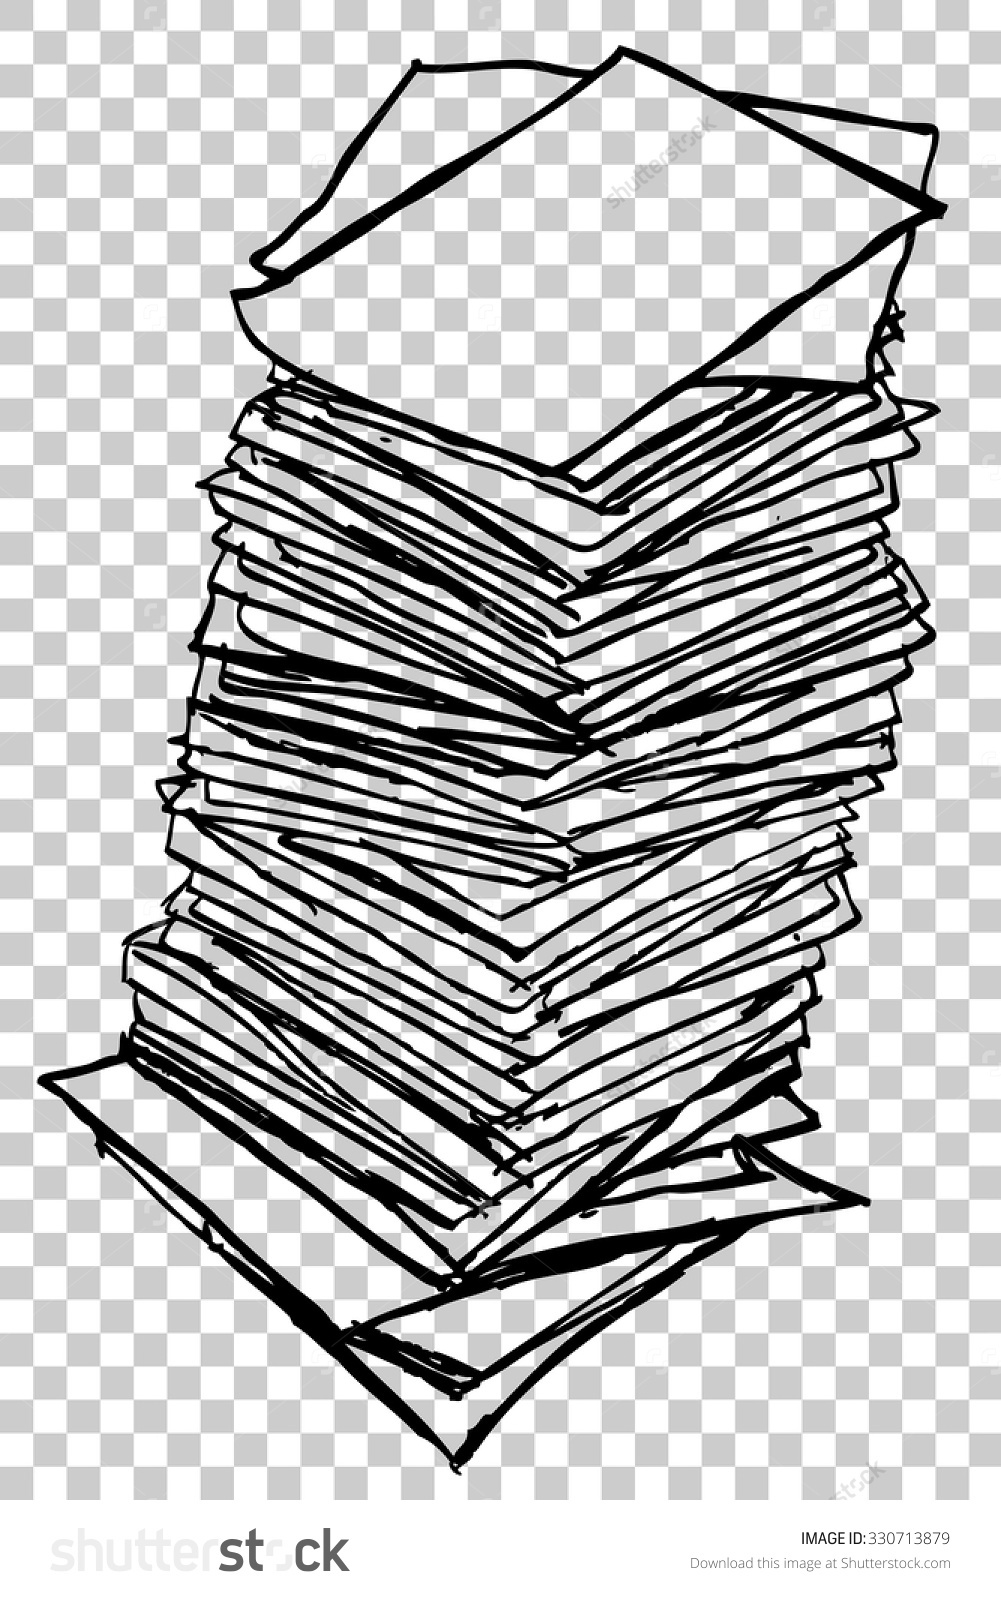 Stack papers clipart - Clipground